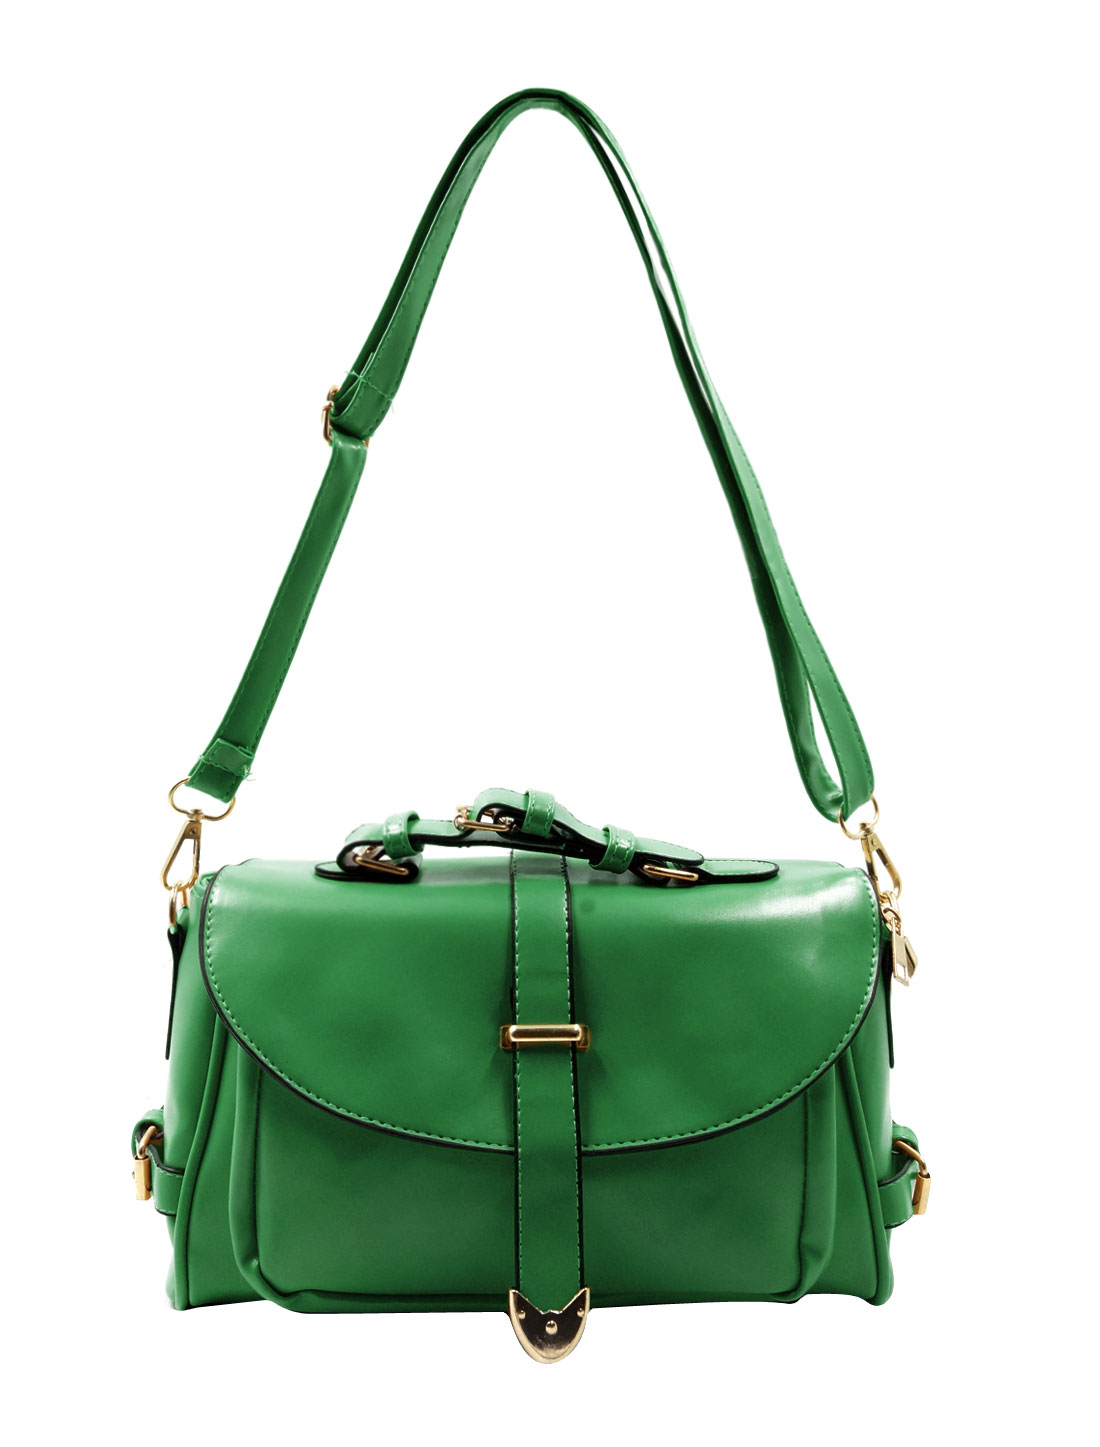 Woman Imiatation Leather Detachable Strap Clutch Shoulder Bag Green